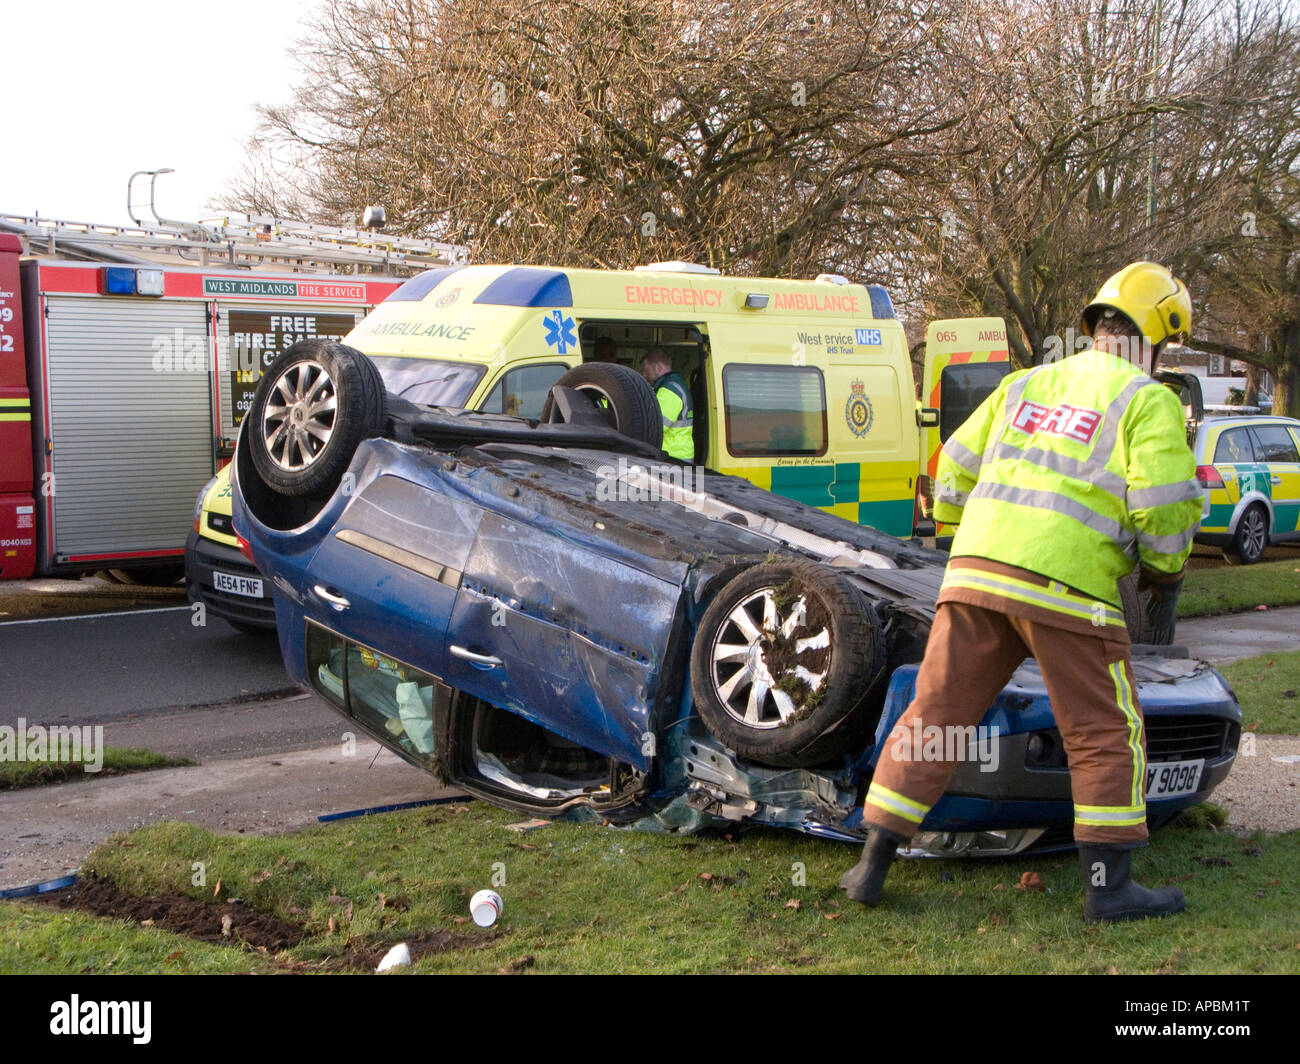 Fireman checks overturned car at road accident scene Stock Photo ...